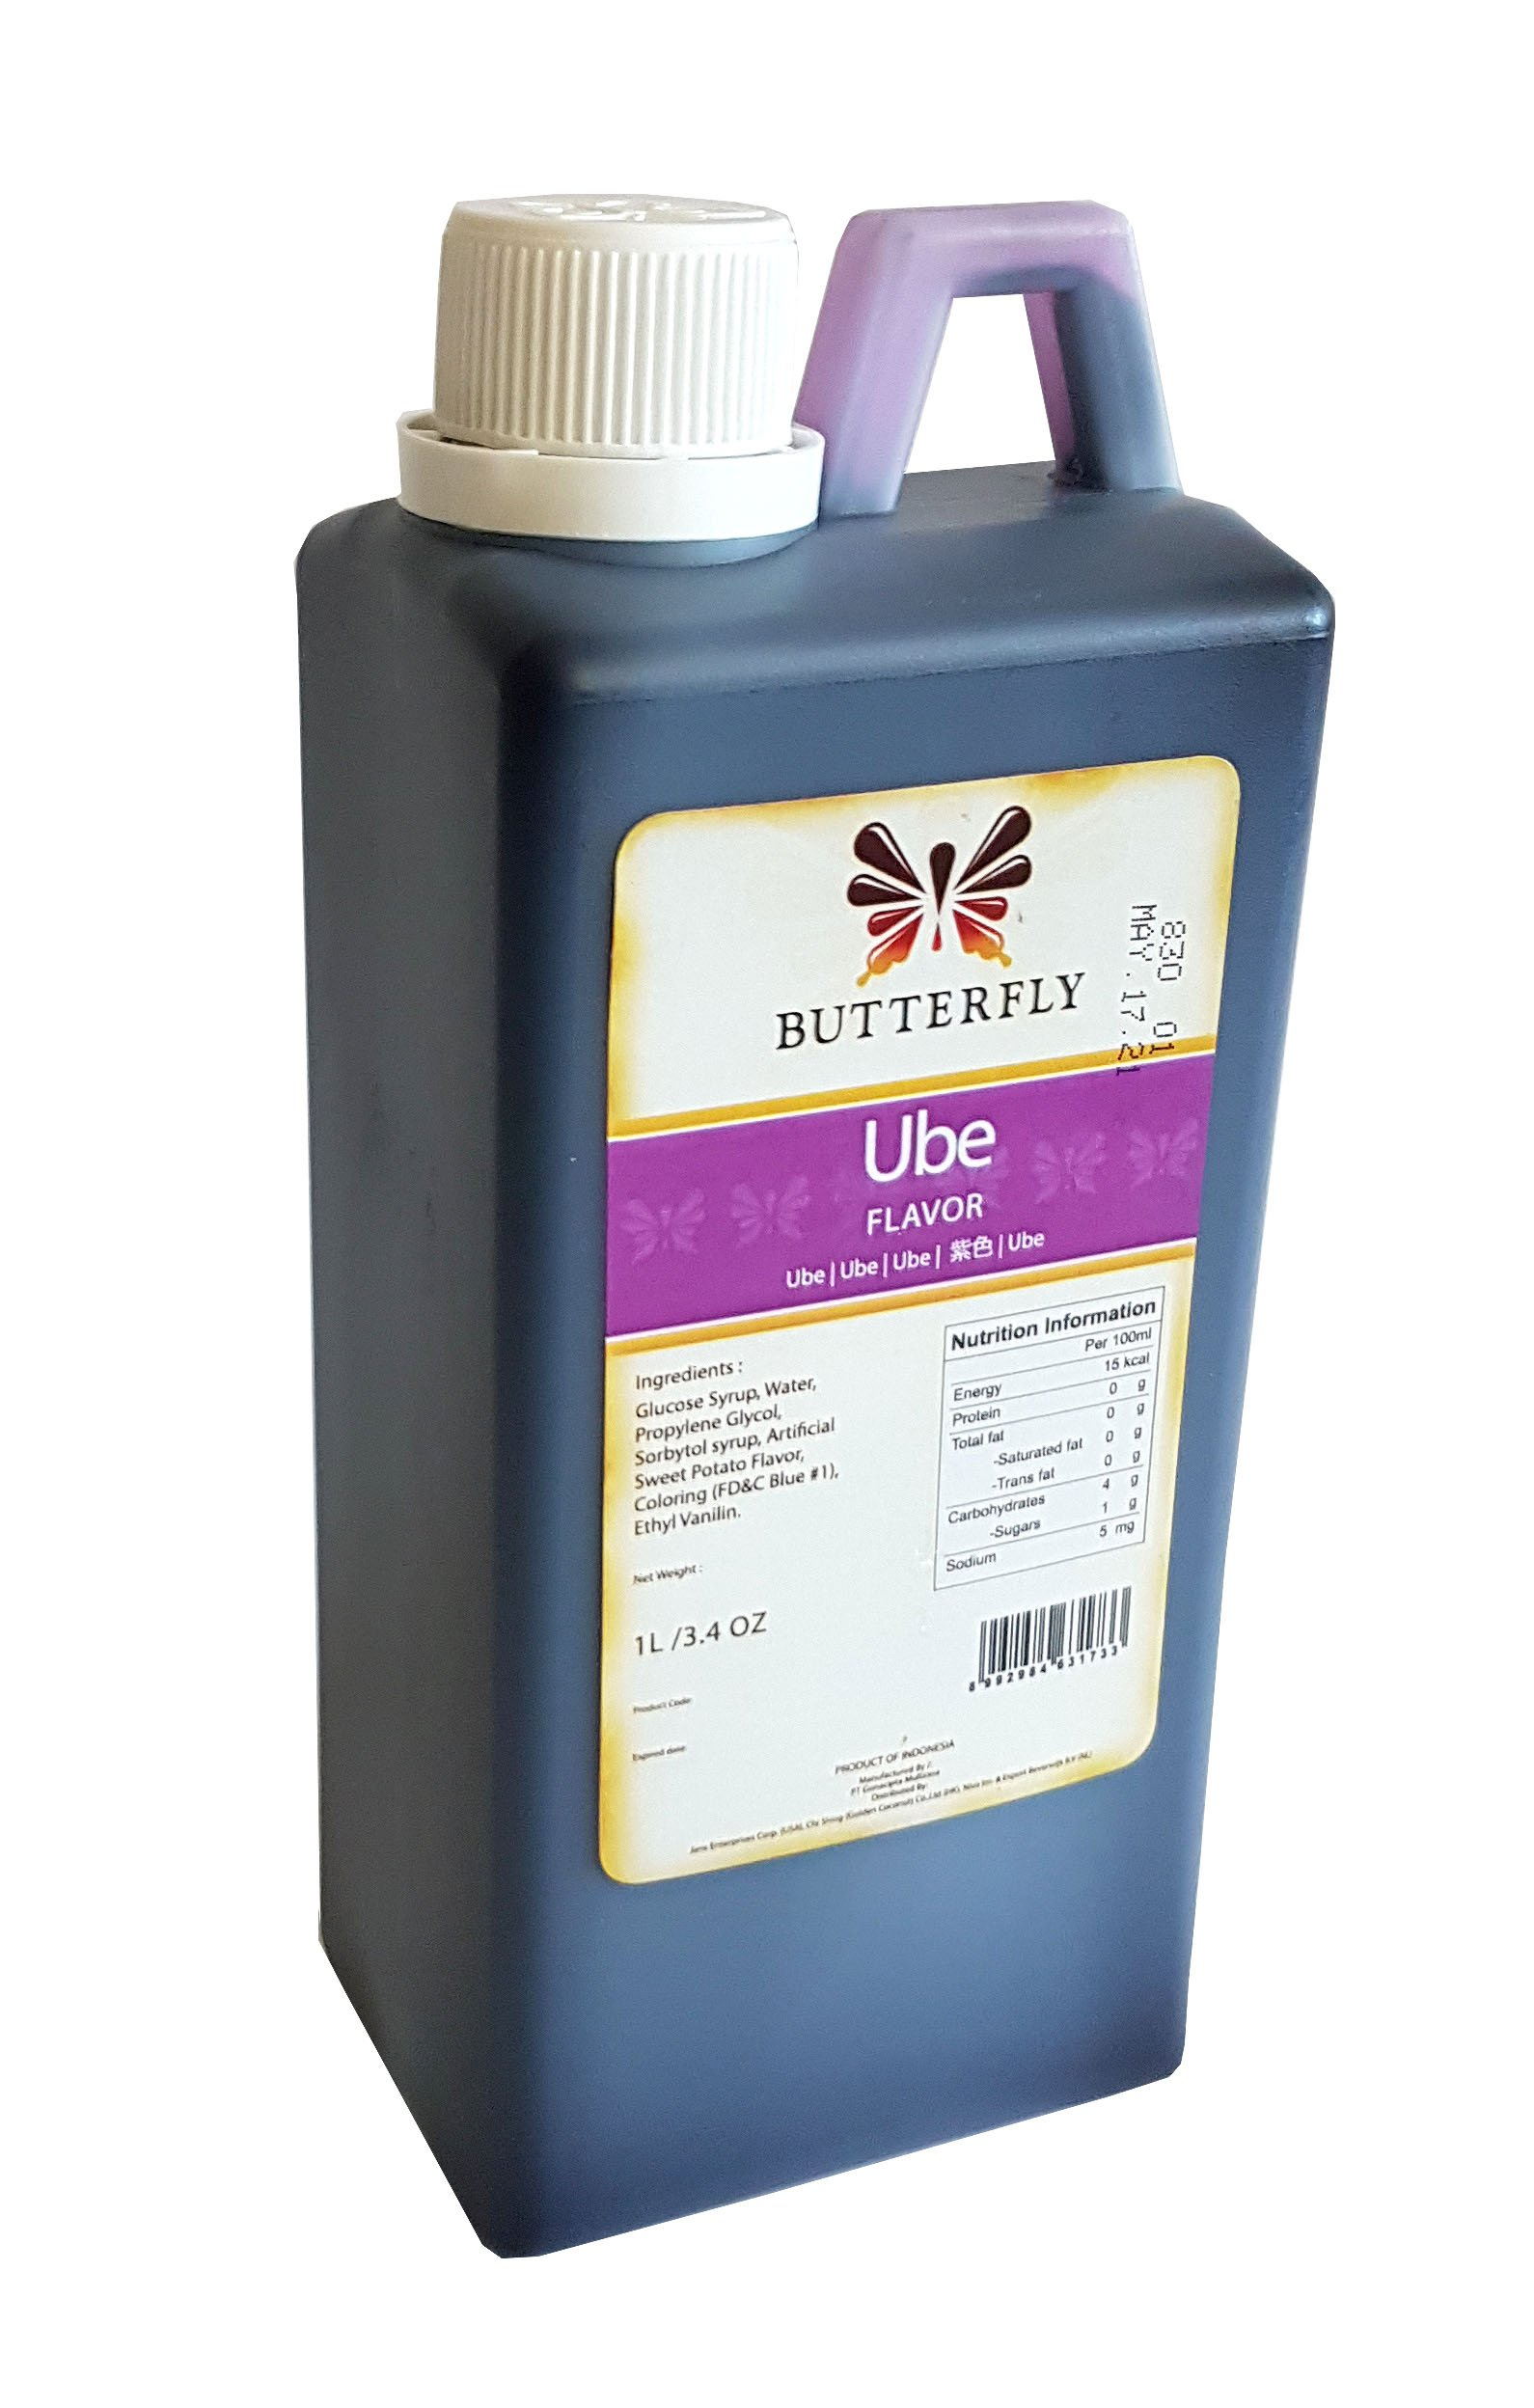 Ube Purple Yam Flavoring Extract Restaurant Size by Butterfly 1 Liter, 33.8 Ounce